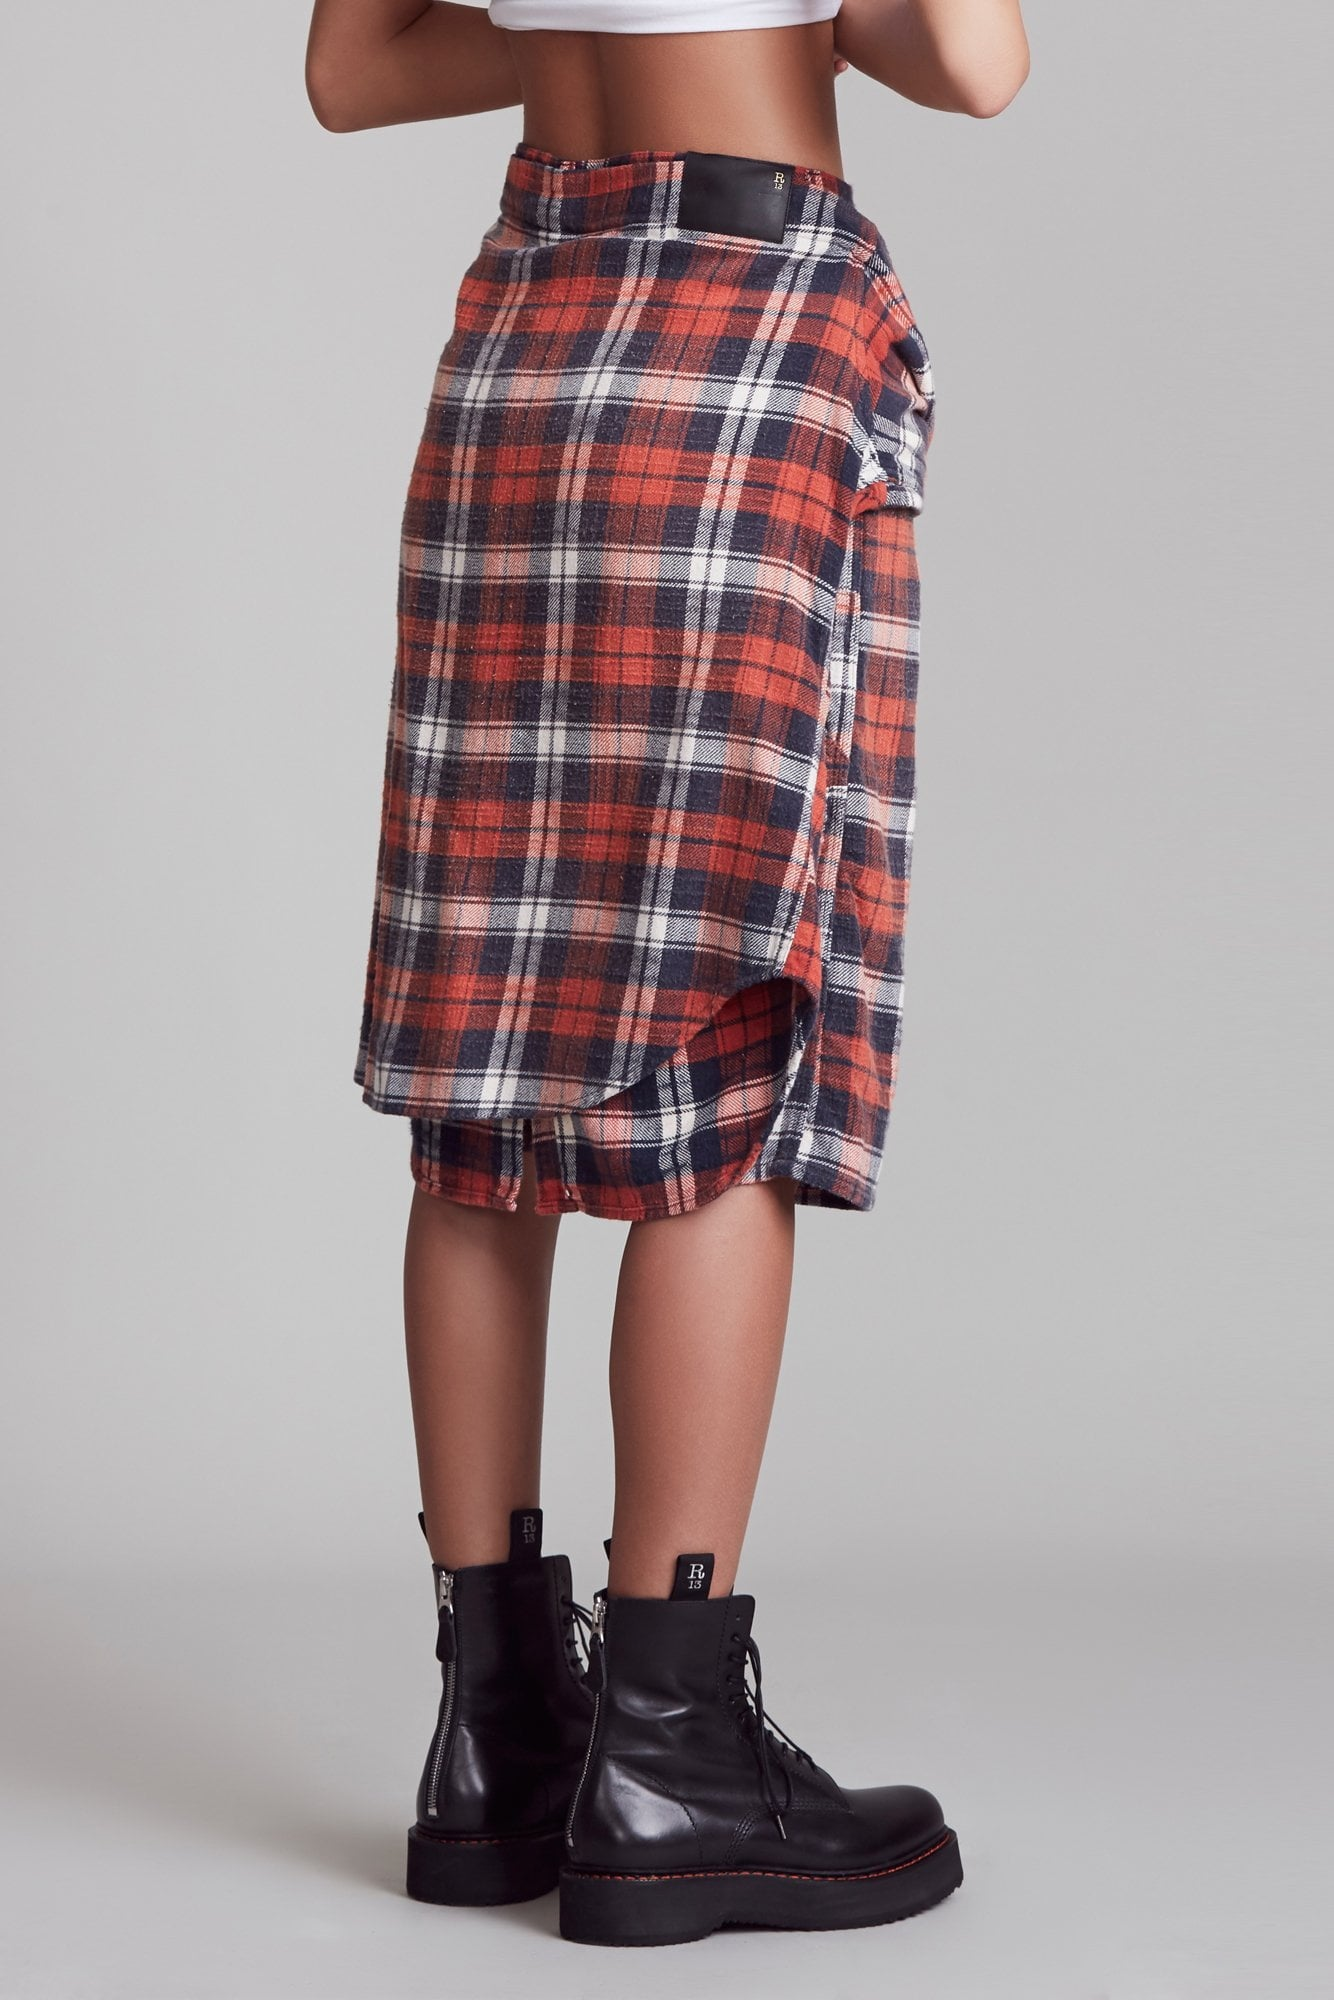 Vedder Short - Red and Blue Plaid